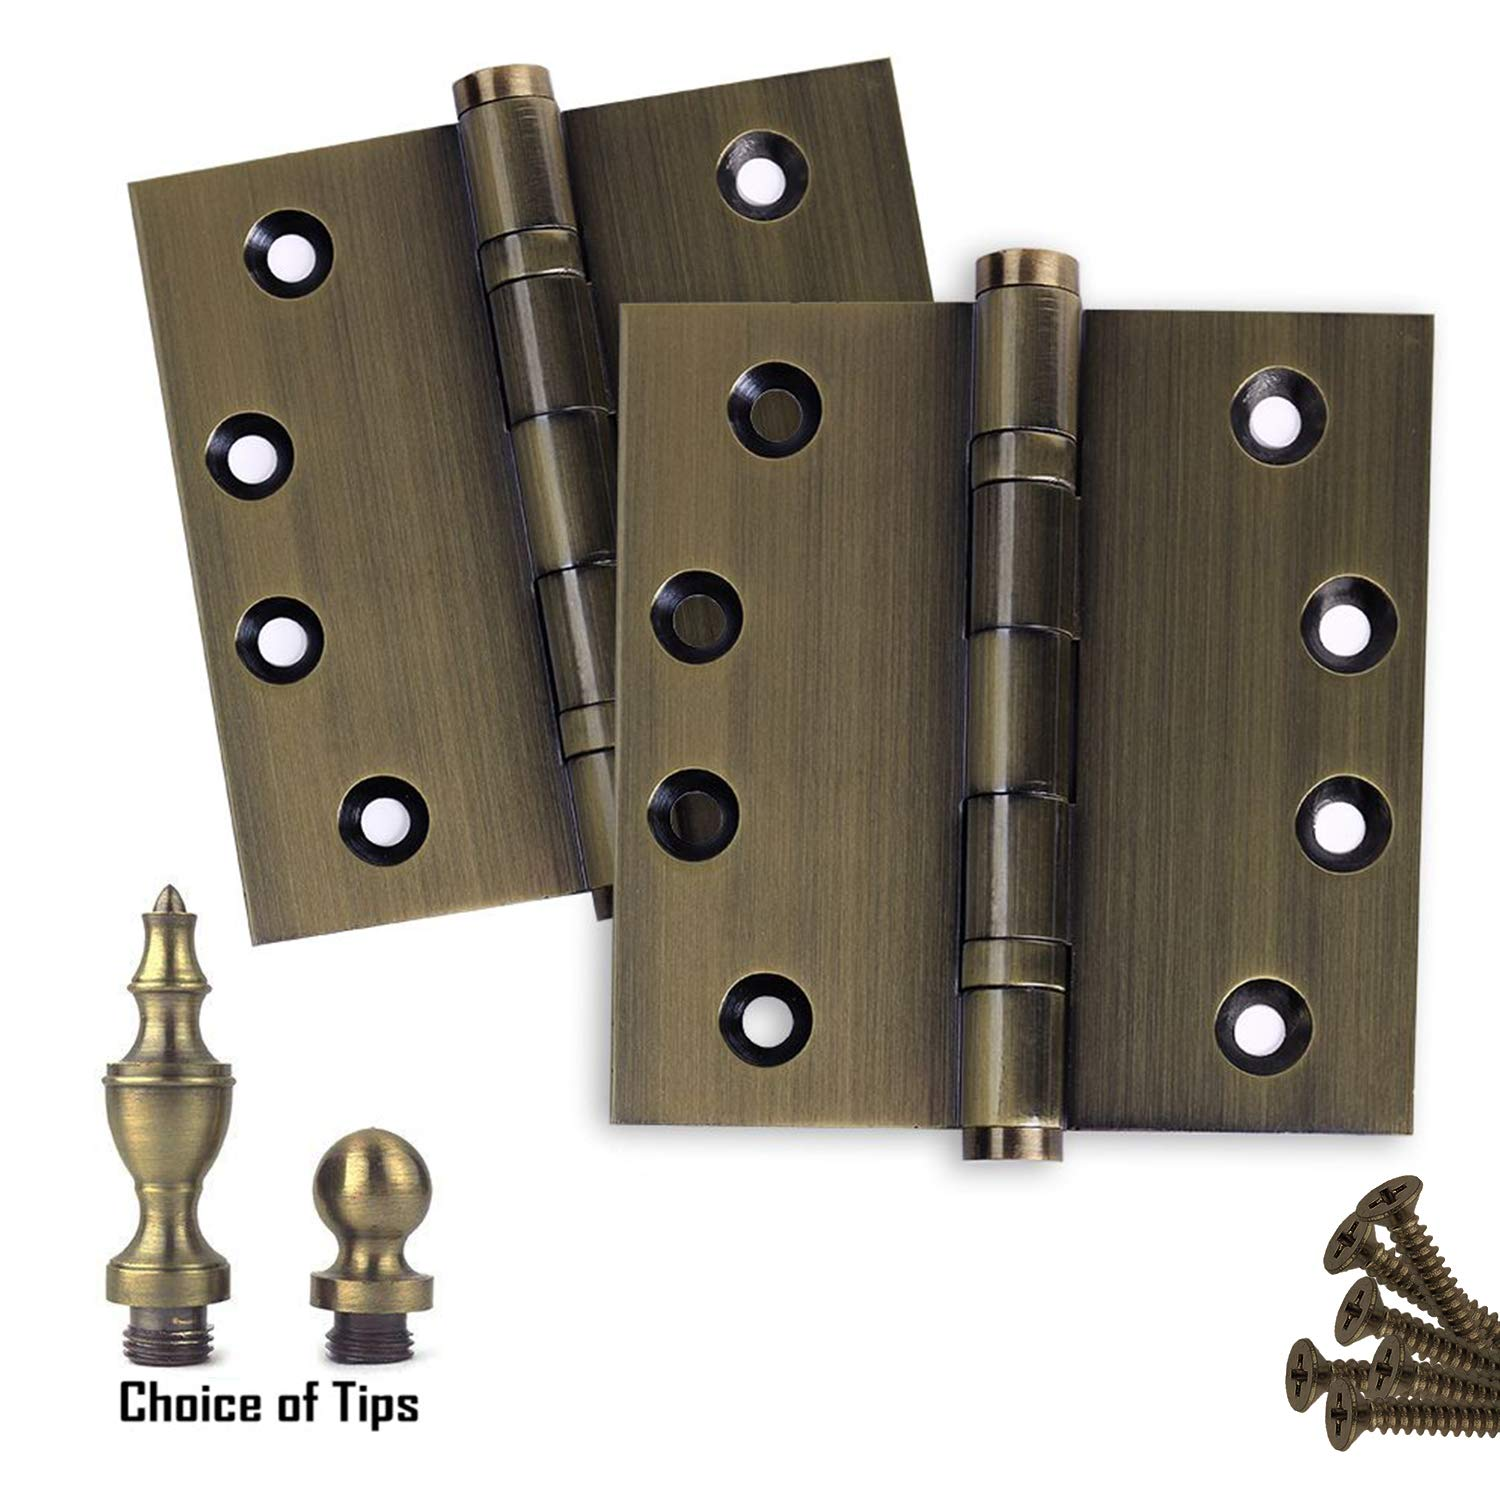 4 x 4 Solid Brass Ball Bearing Hinges Ball Urn Flat Tips Included Heavy Duty Architectural Grade Antique Brass Finish US5 Stainless Steel Pin 3